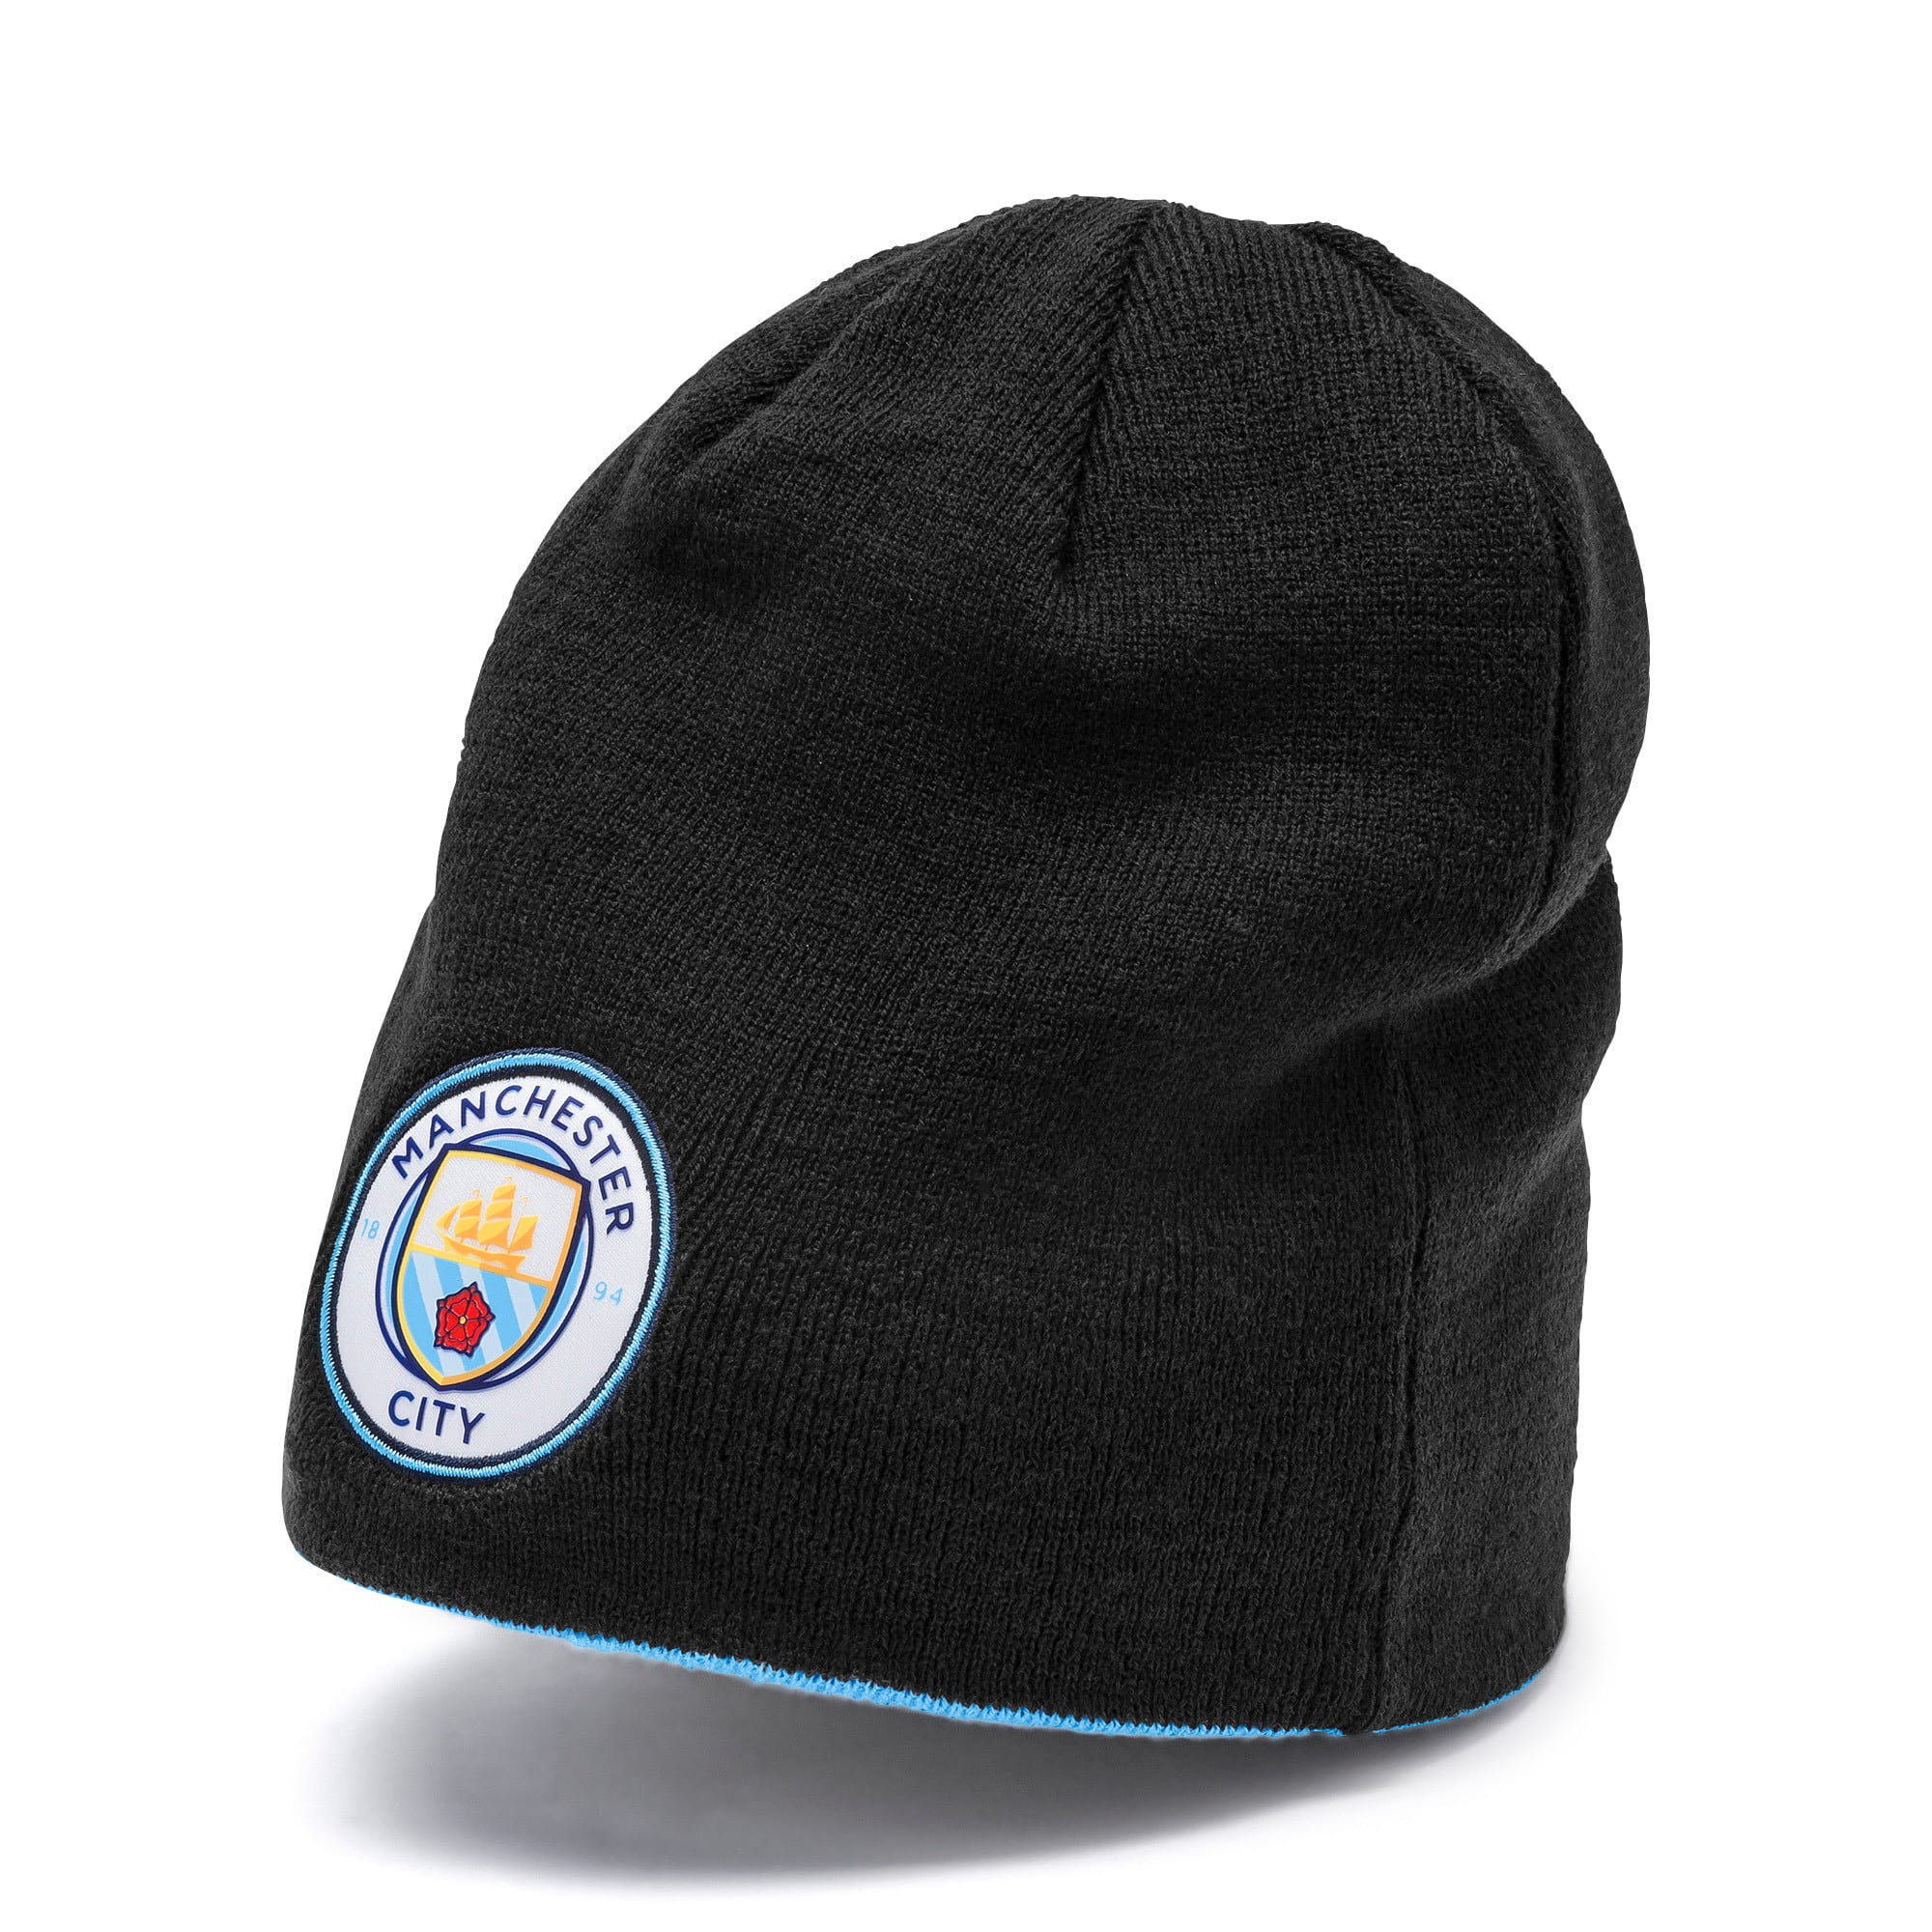 Thumbnail 1 of Man City Reversible Beanie, Puma Black-Team Light Blue, medium